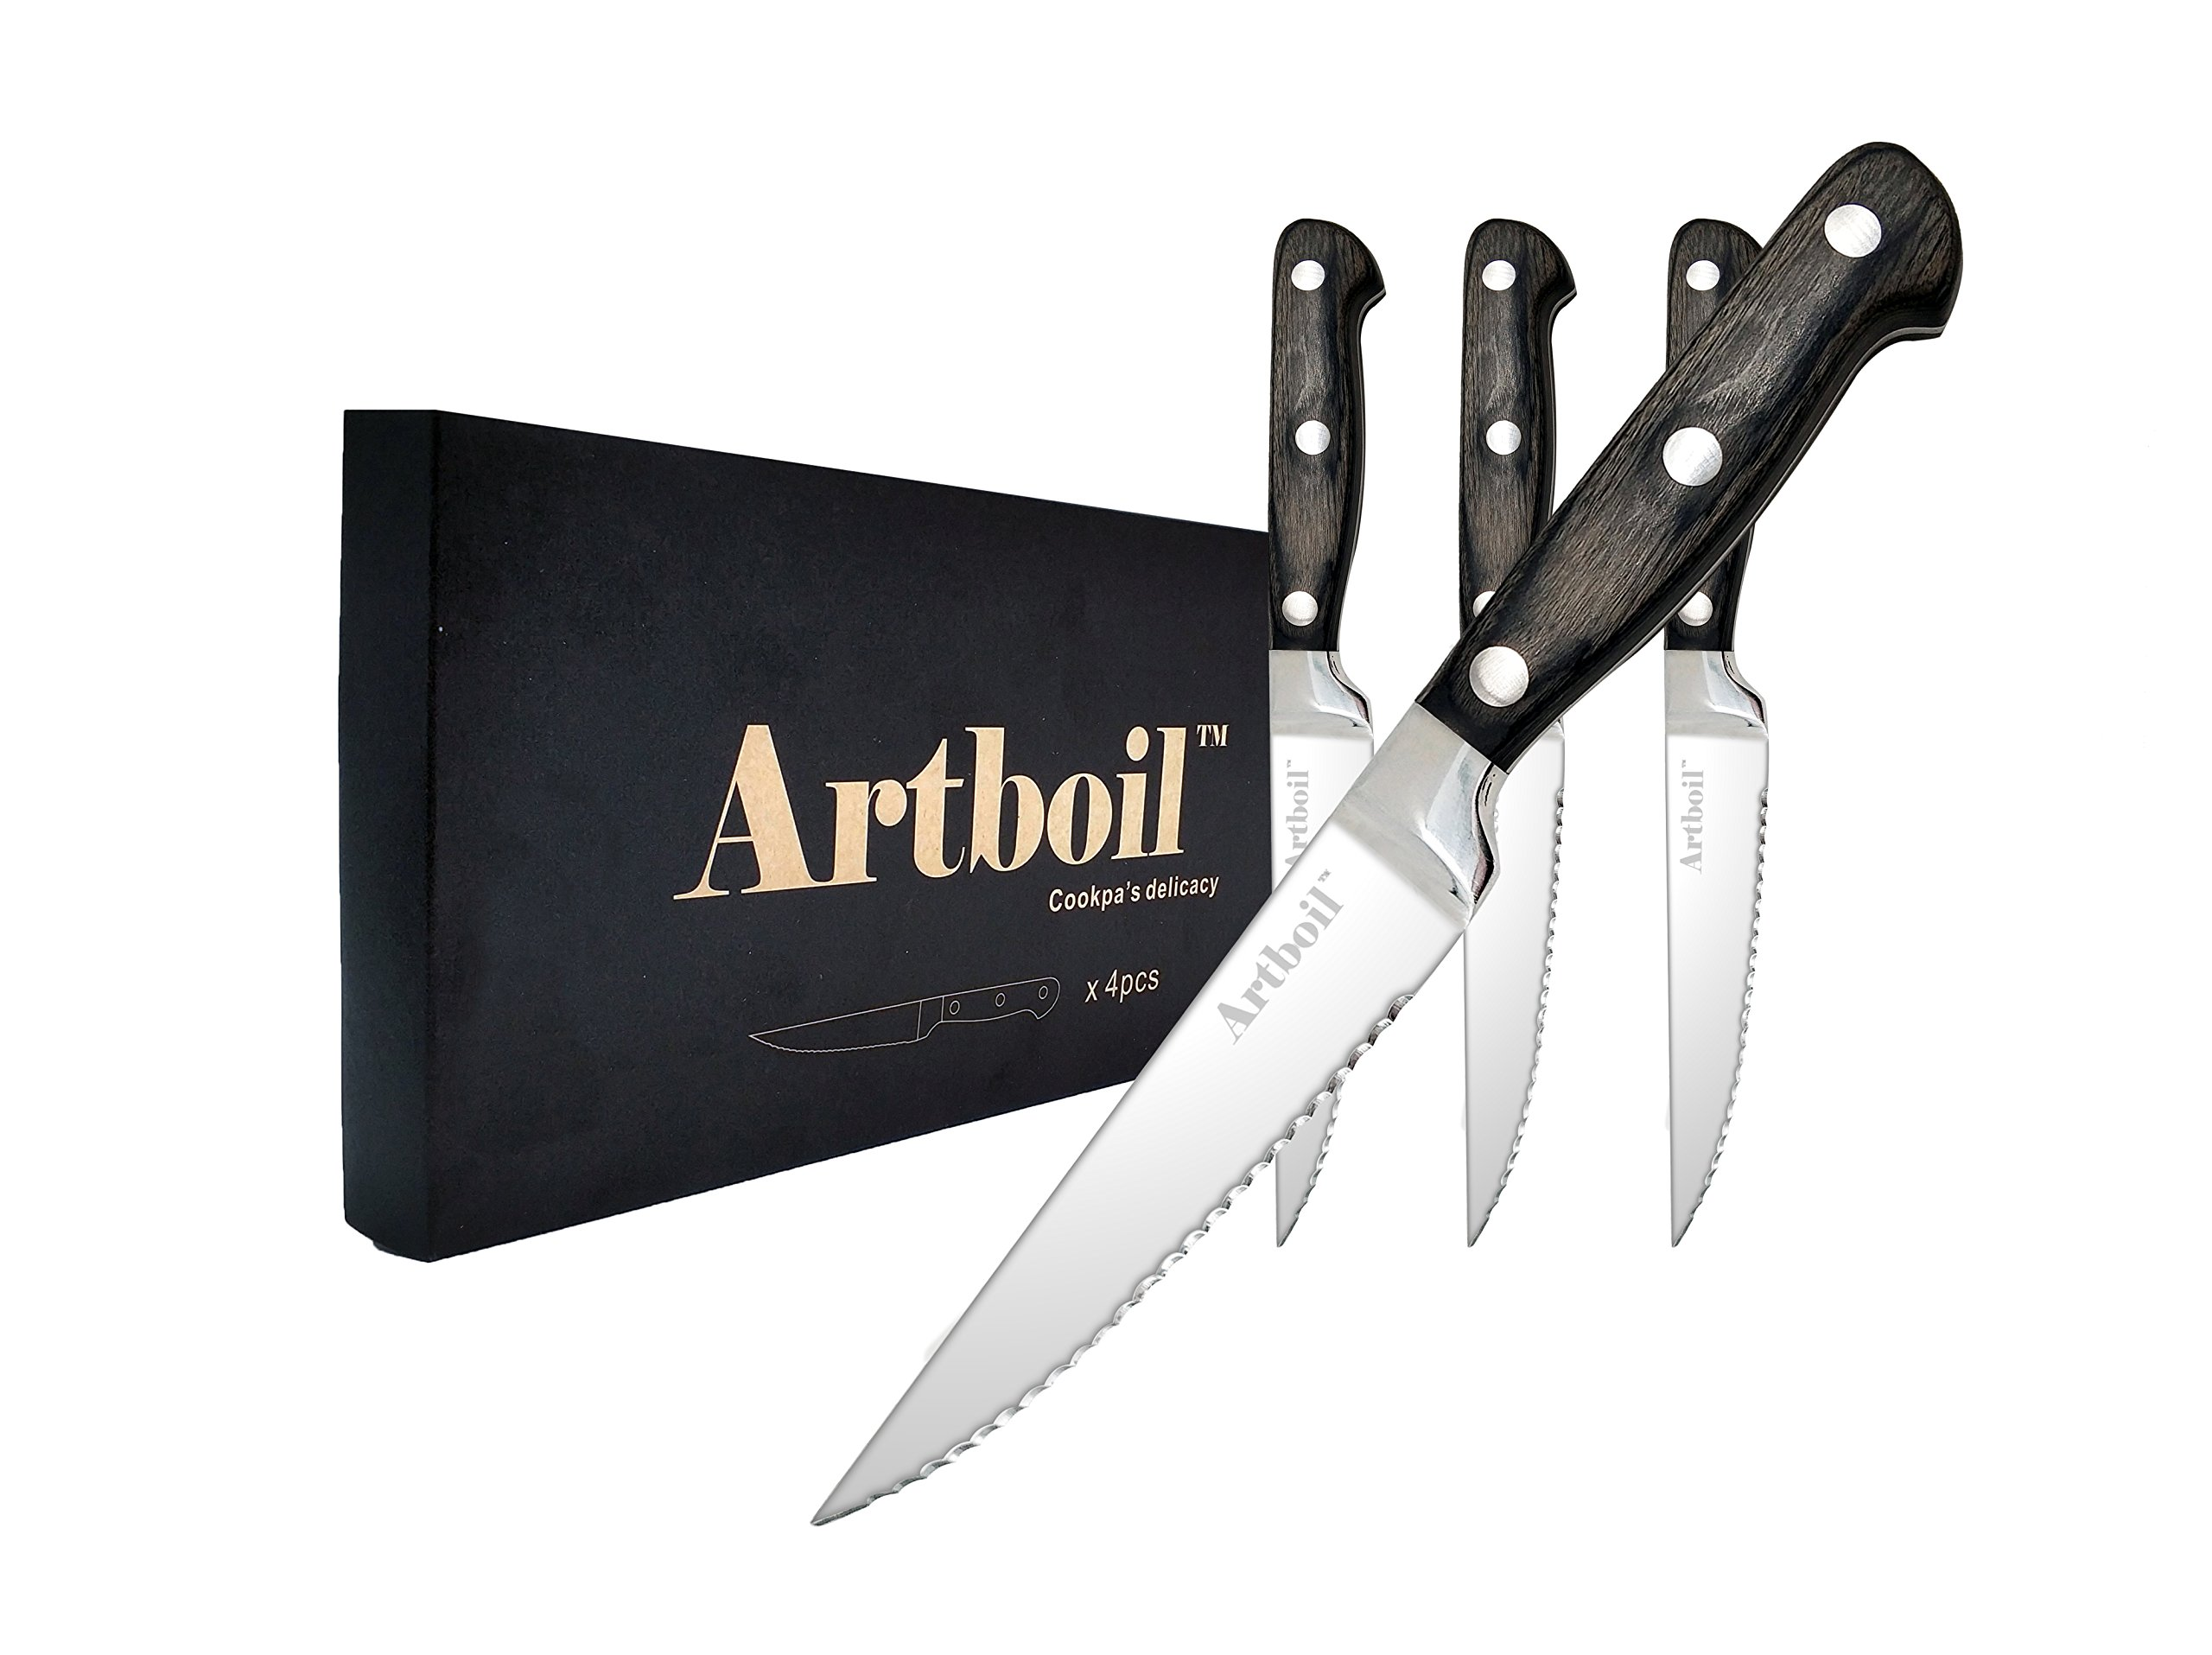 Artboil Steak Knives Set of 4 - Premium Clean Cut Serrated Steak Knife Stainless Steel - Pakka Wood Full Tang Handle by Artboil